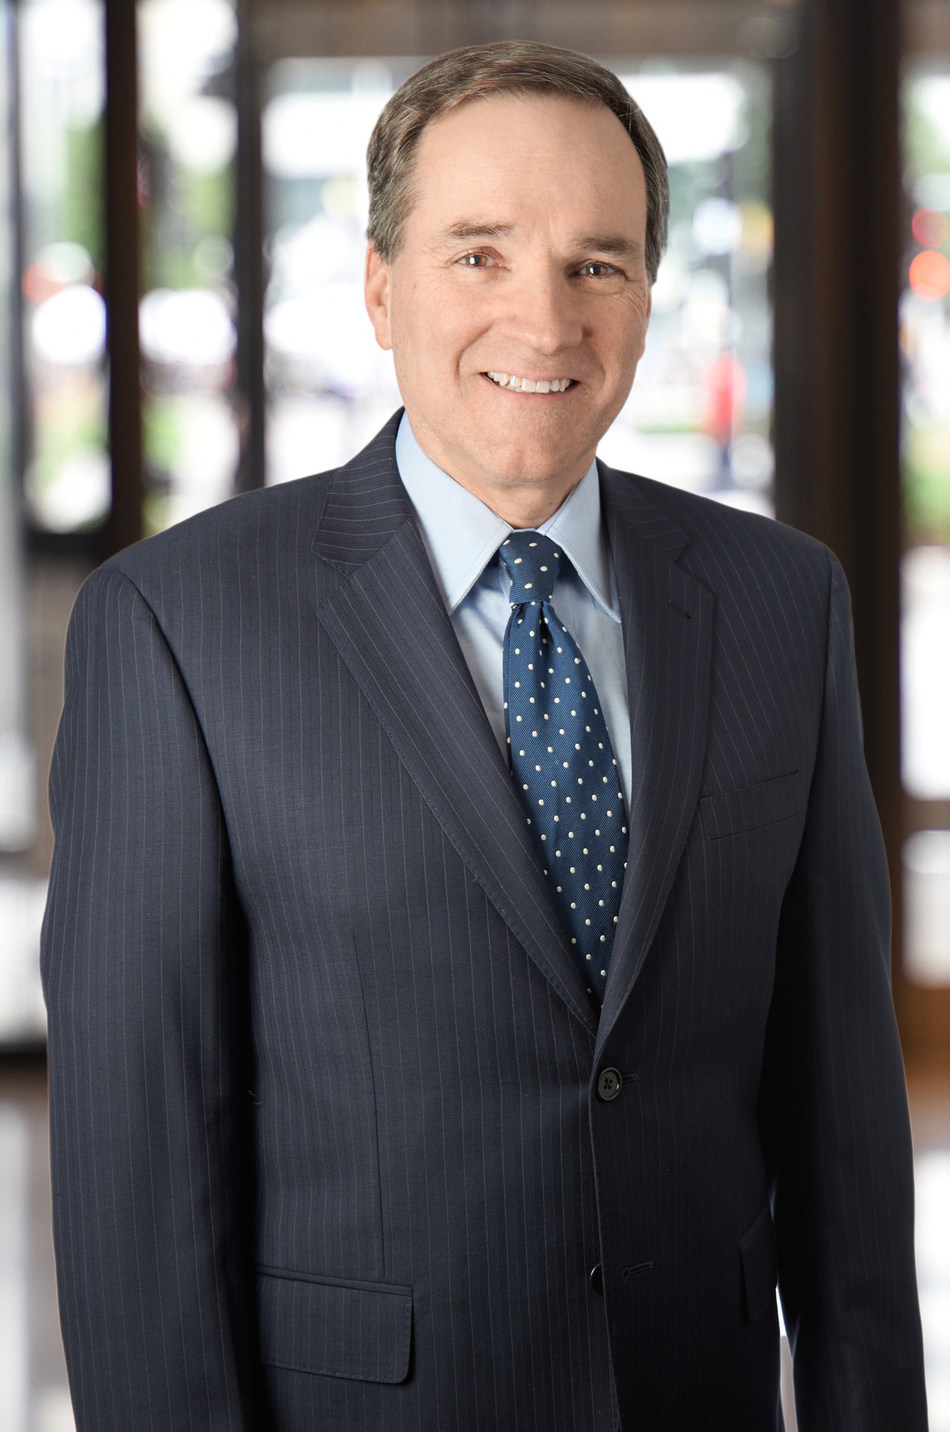 "Robert O'Regan, a partner at Burns & Levinson, has been named a 2019 Family Law Trailblazer by The National Law Journal for his ""deep passion and perseverance"" in pursuit of his mission and for achieving ""remarkable successes along the way."" Over his 30-year career, O'Regan has achieved many pioneering wins in family law, including two recent high-profile and precedent-setting appeals arising from divorce litigation."